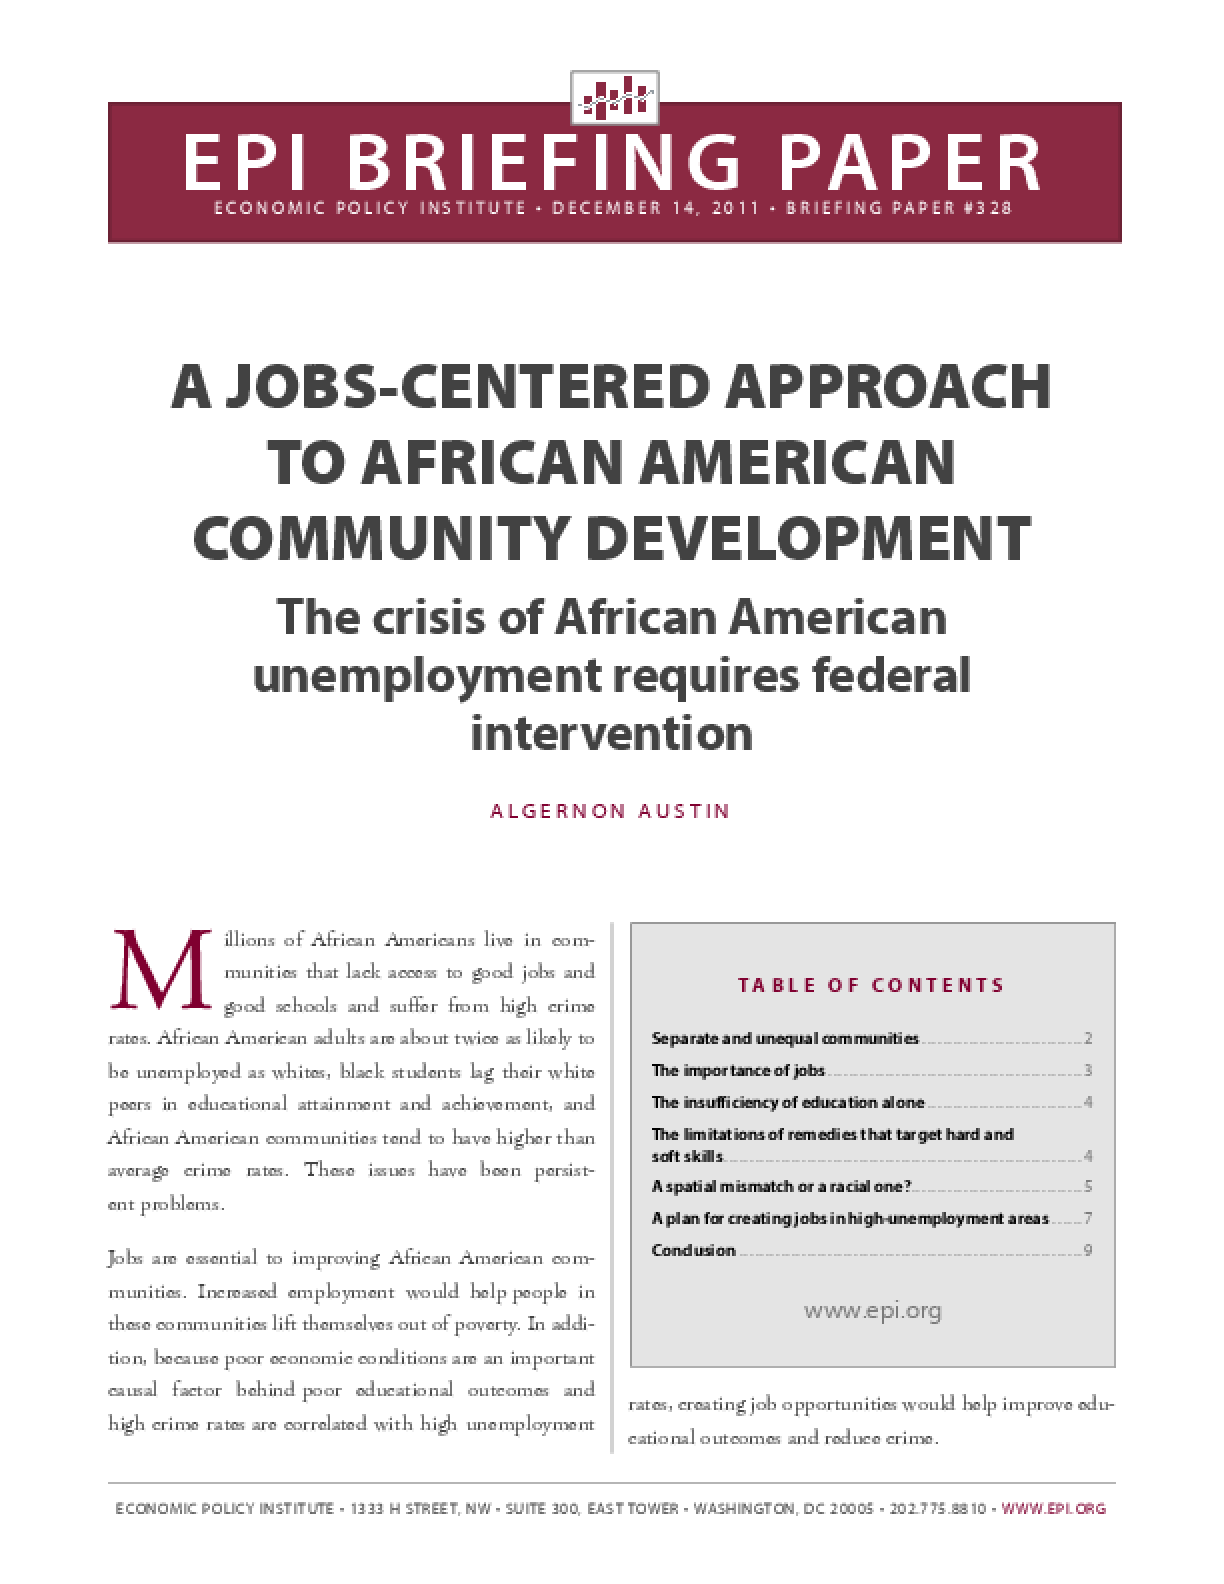 A Jobs-Centered Approach to African-American Community Development